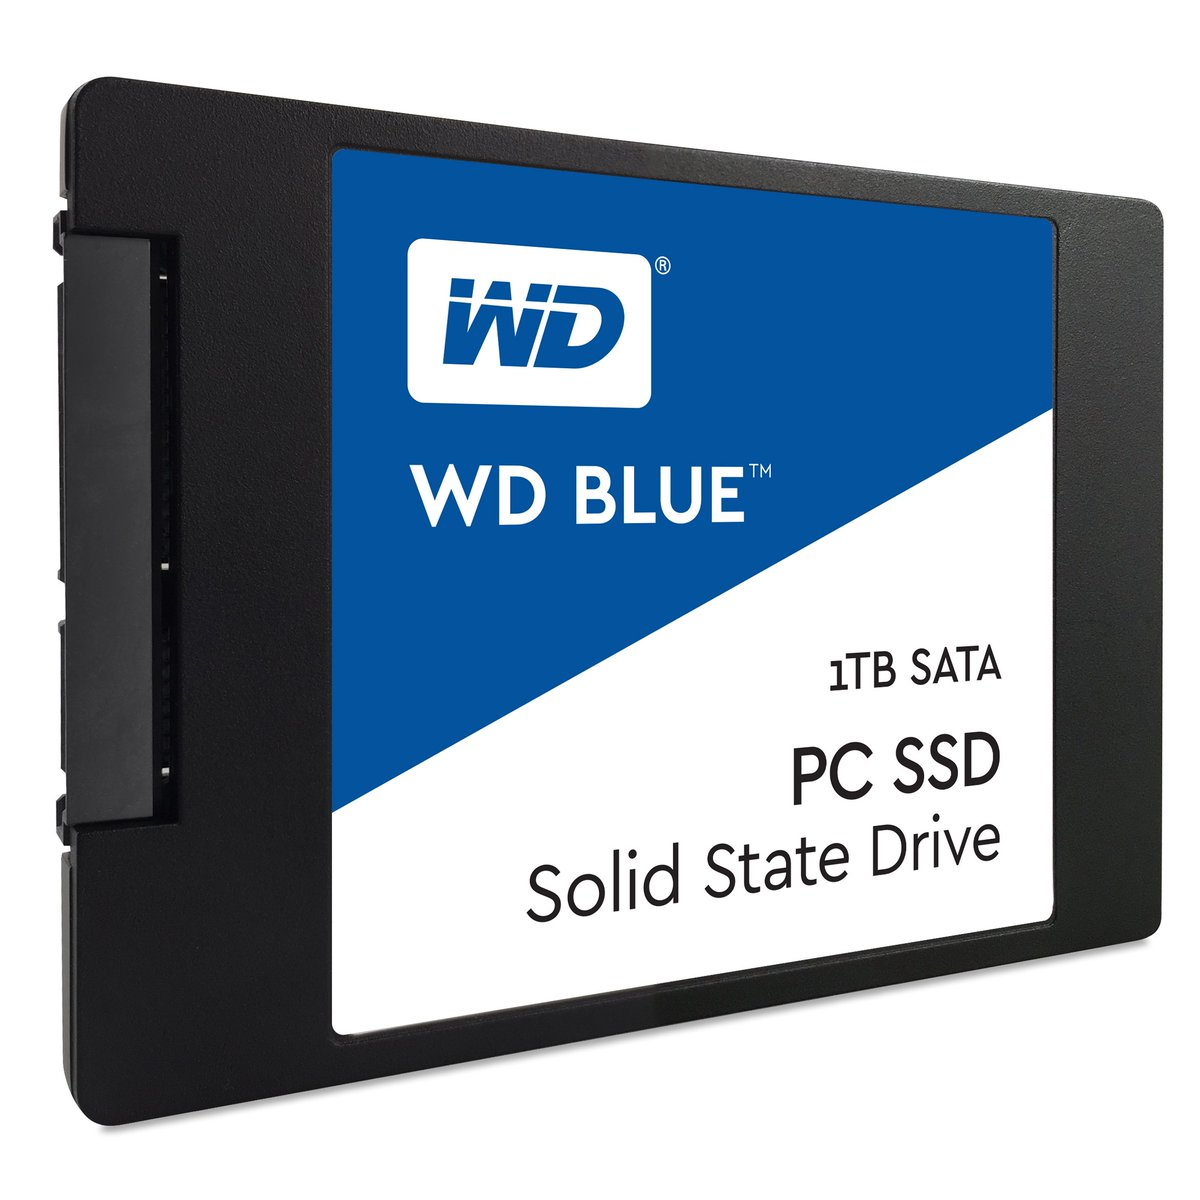 Today's video was brought to you by @WD_UK #AD https://t.co/1Vh1r7oJ6u  We benchmarked WoW loading times on a WD Blue SSD & hard drive - check it out!  https://t.co/VBCwqKaVwE https://t.co/TADBN0QFDq